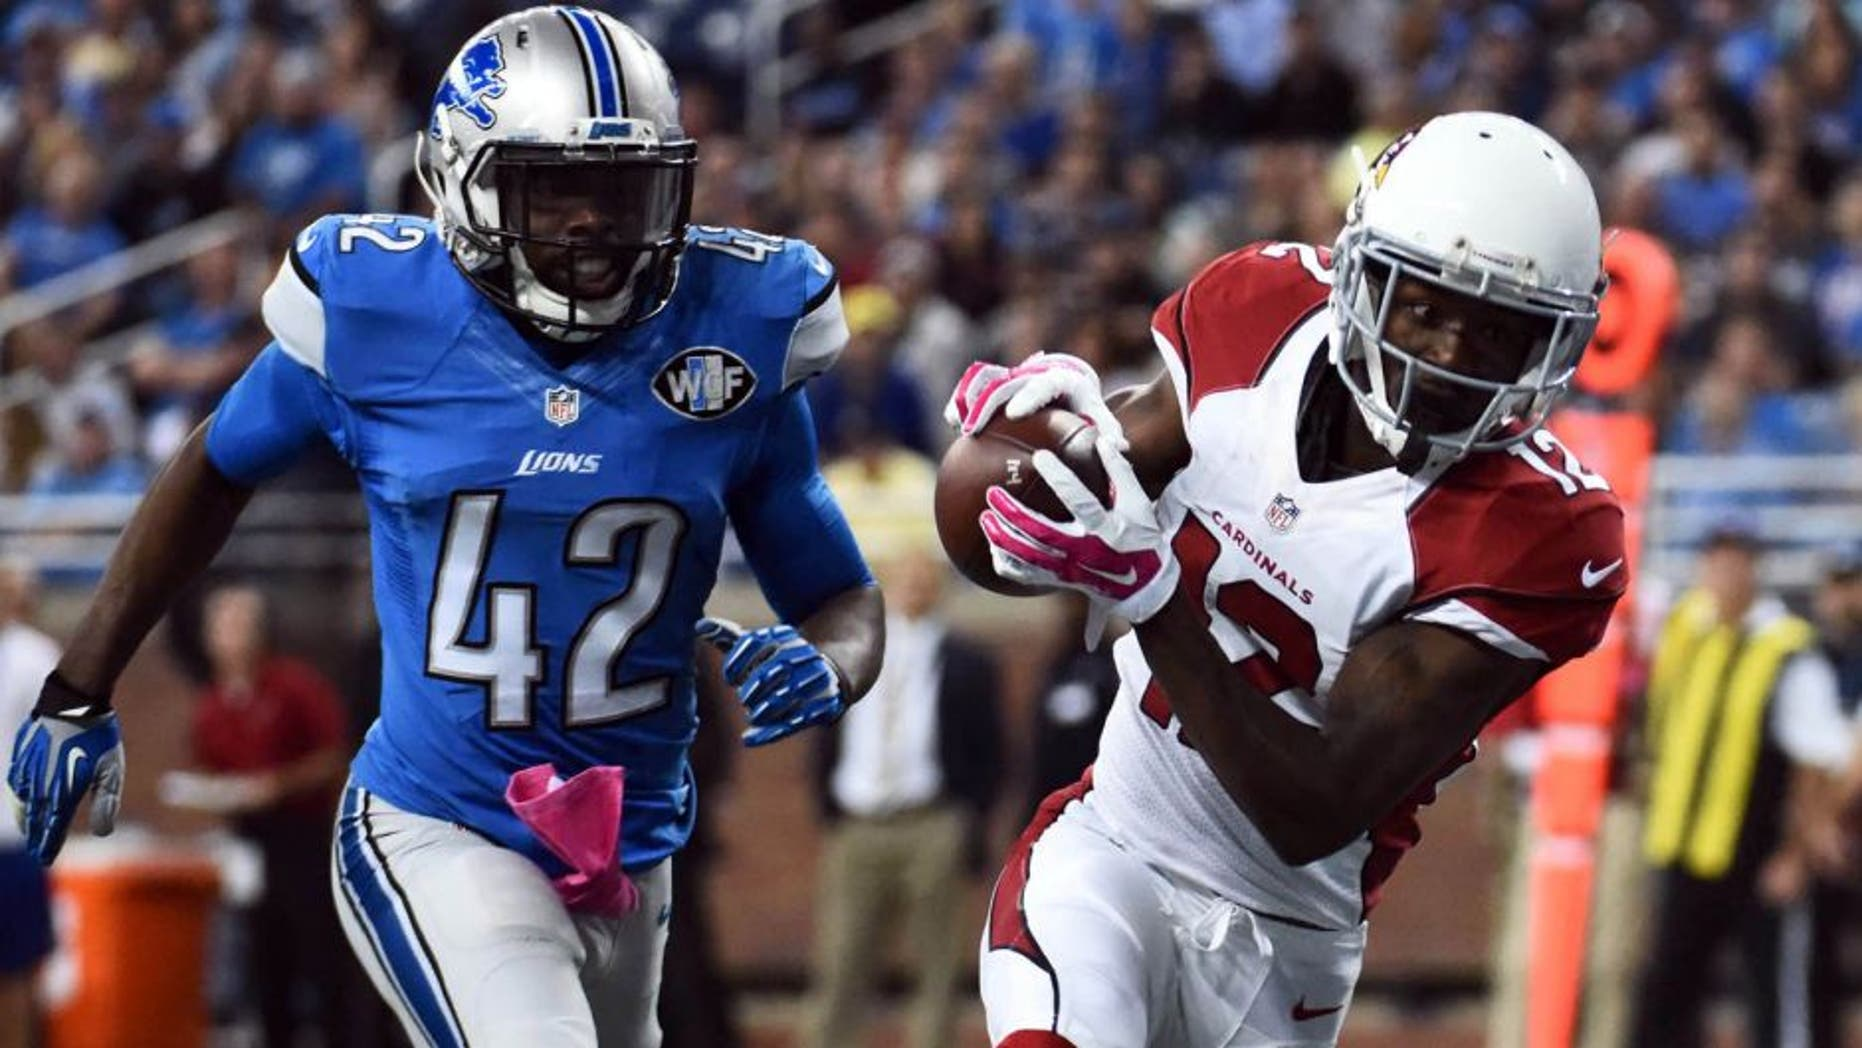 Oct 11, 2015; Detroit, MI, USA; Arizona Cardinals wide receiver John Brown (12) completes a pass for a touchdown during the second quarter while being pressured by Detroit Lions strong safety Isa Abdul-Quddus (42) at Ford Field. Mandatory Credit: Tim Fuller-USA TODAY Sports